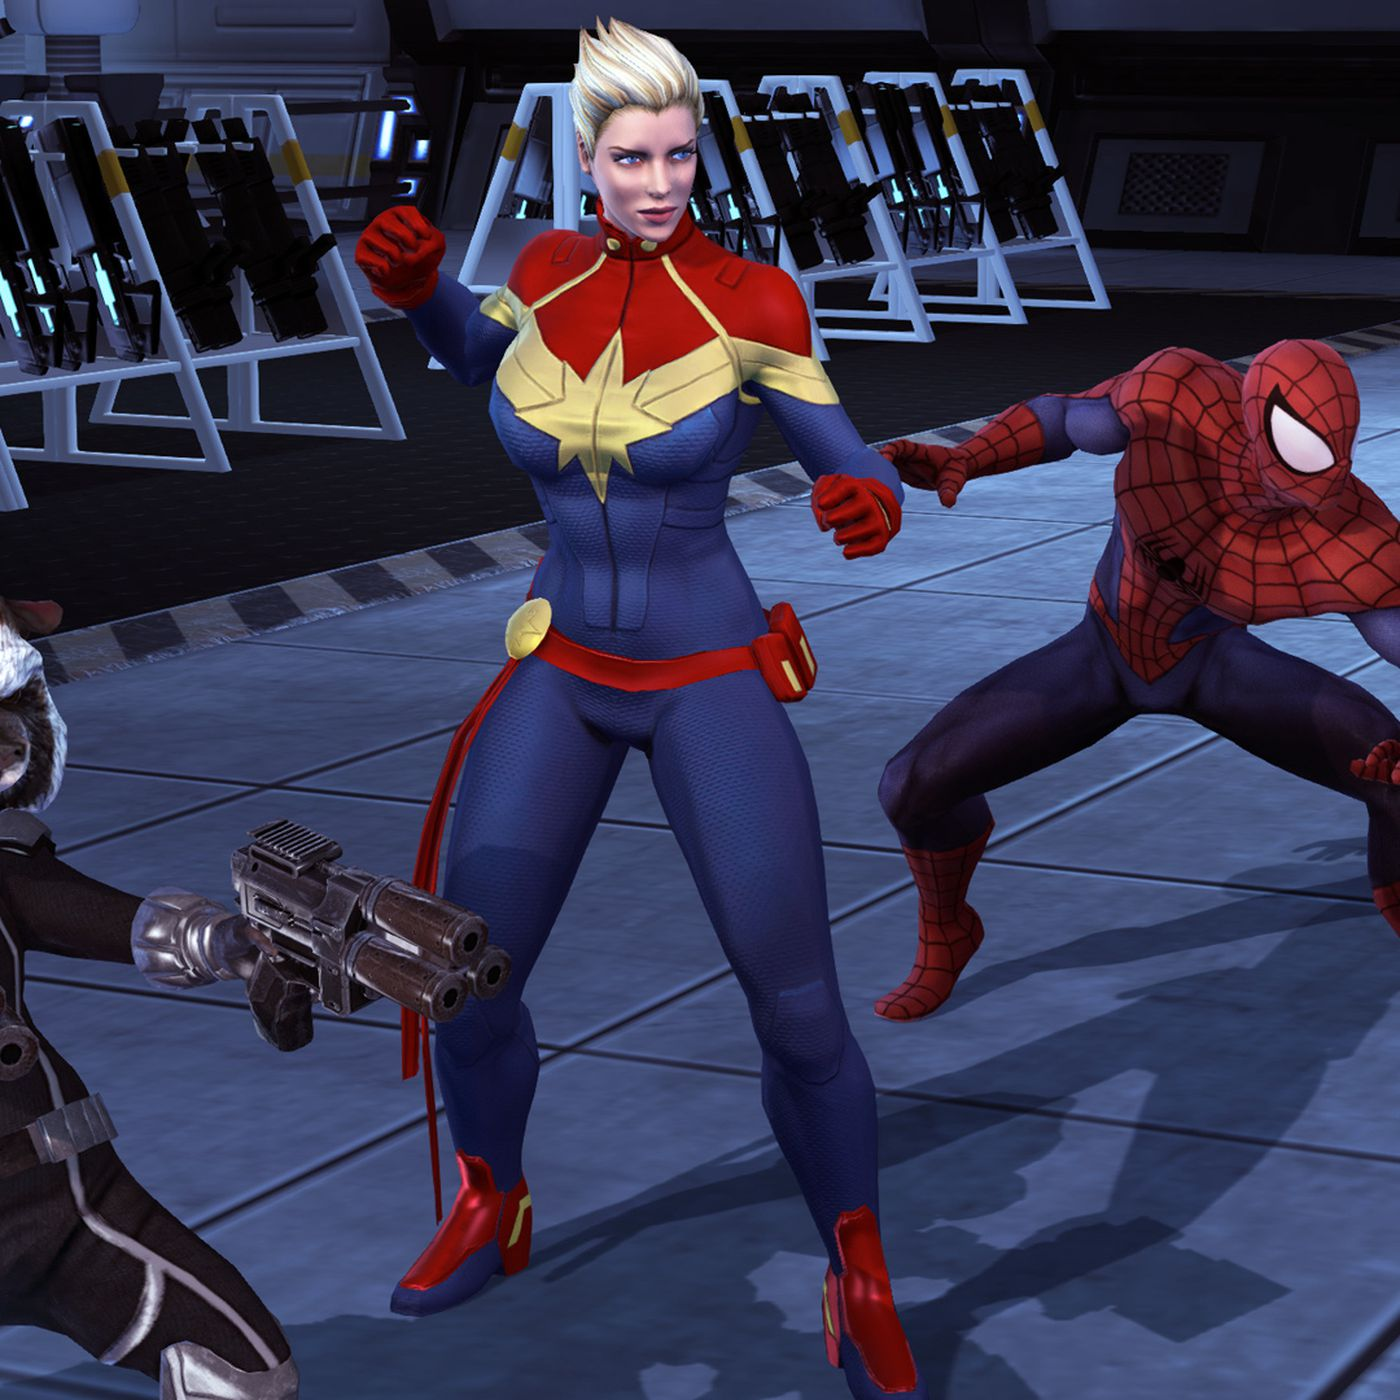 Marvel Heroes shutting down - Polygon